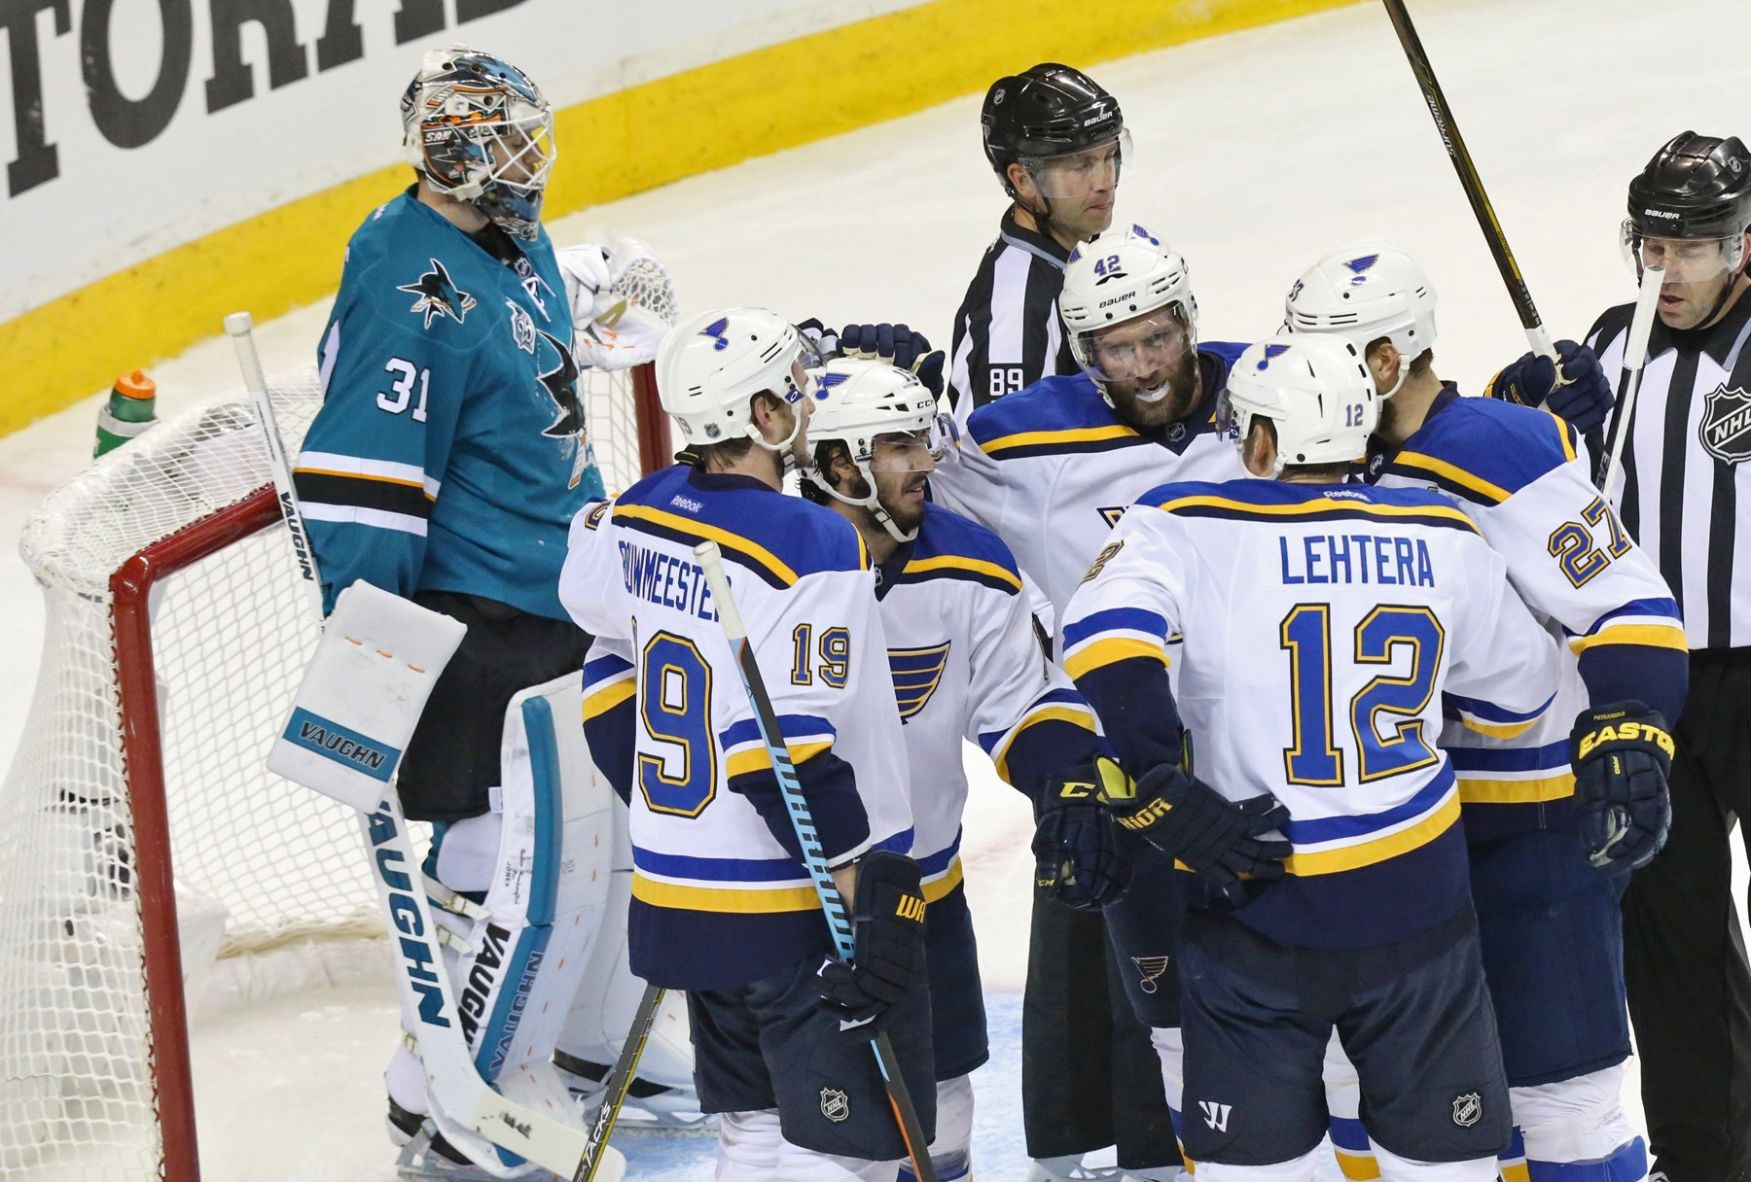 Blues bounce back with 6-3 win over Sharks